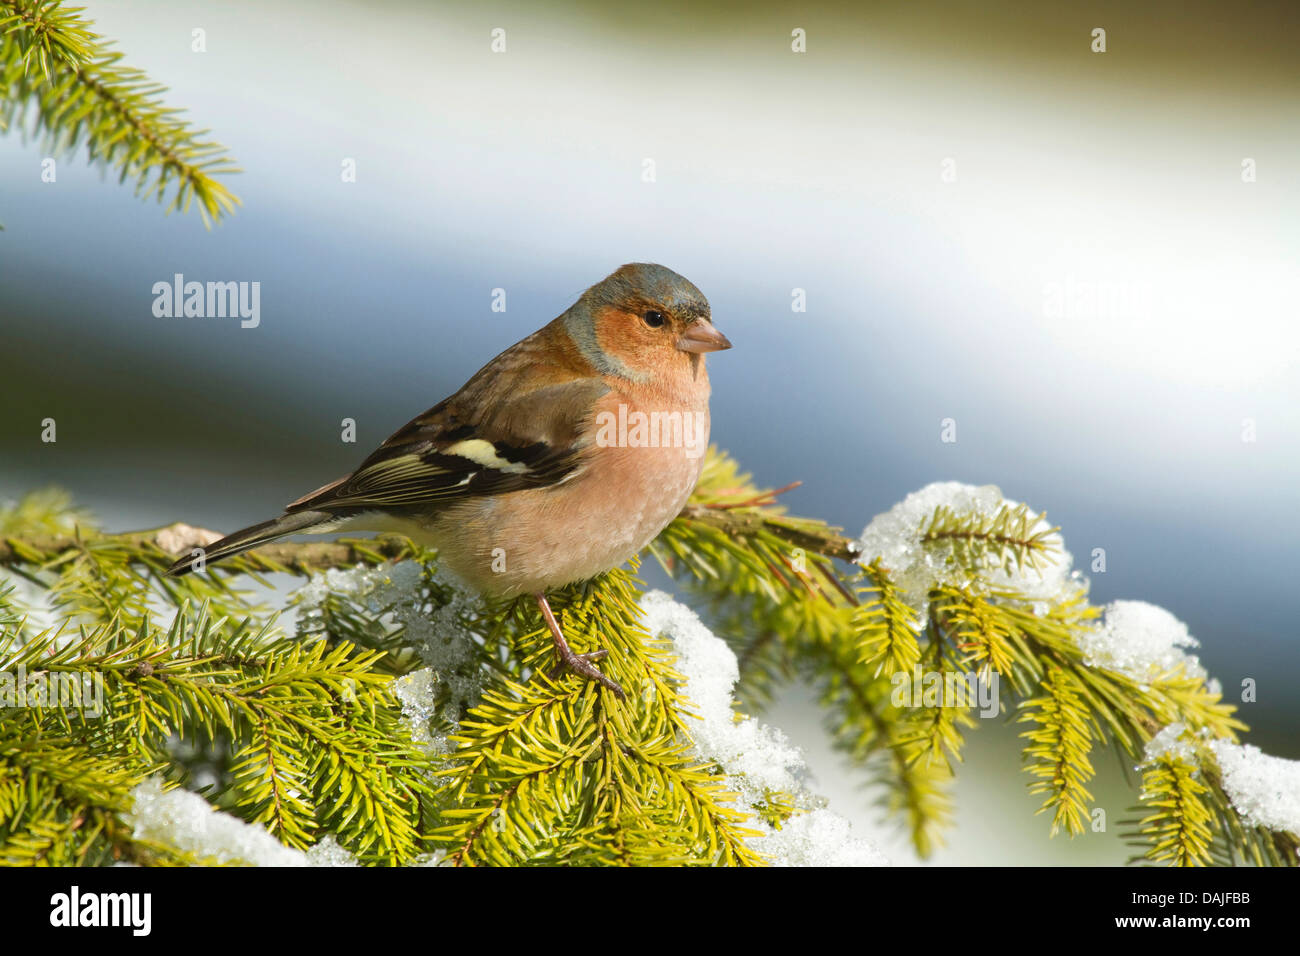 chaffinch (Fringilla coelebs), male sitting on a spruce twig, Germany - Stock Image